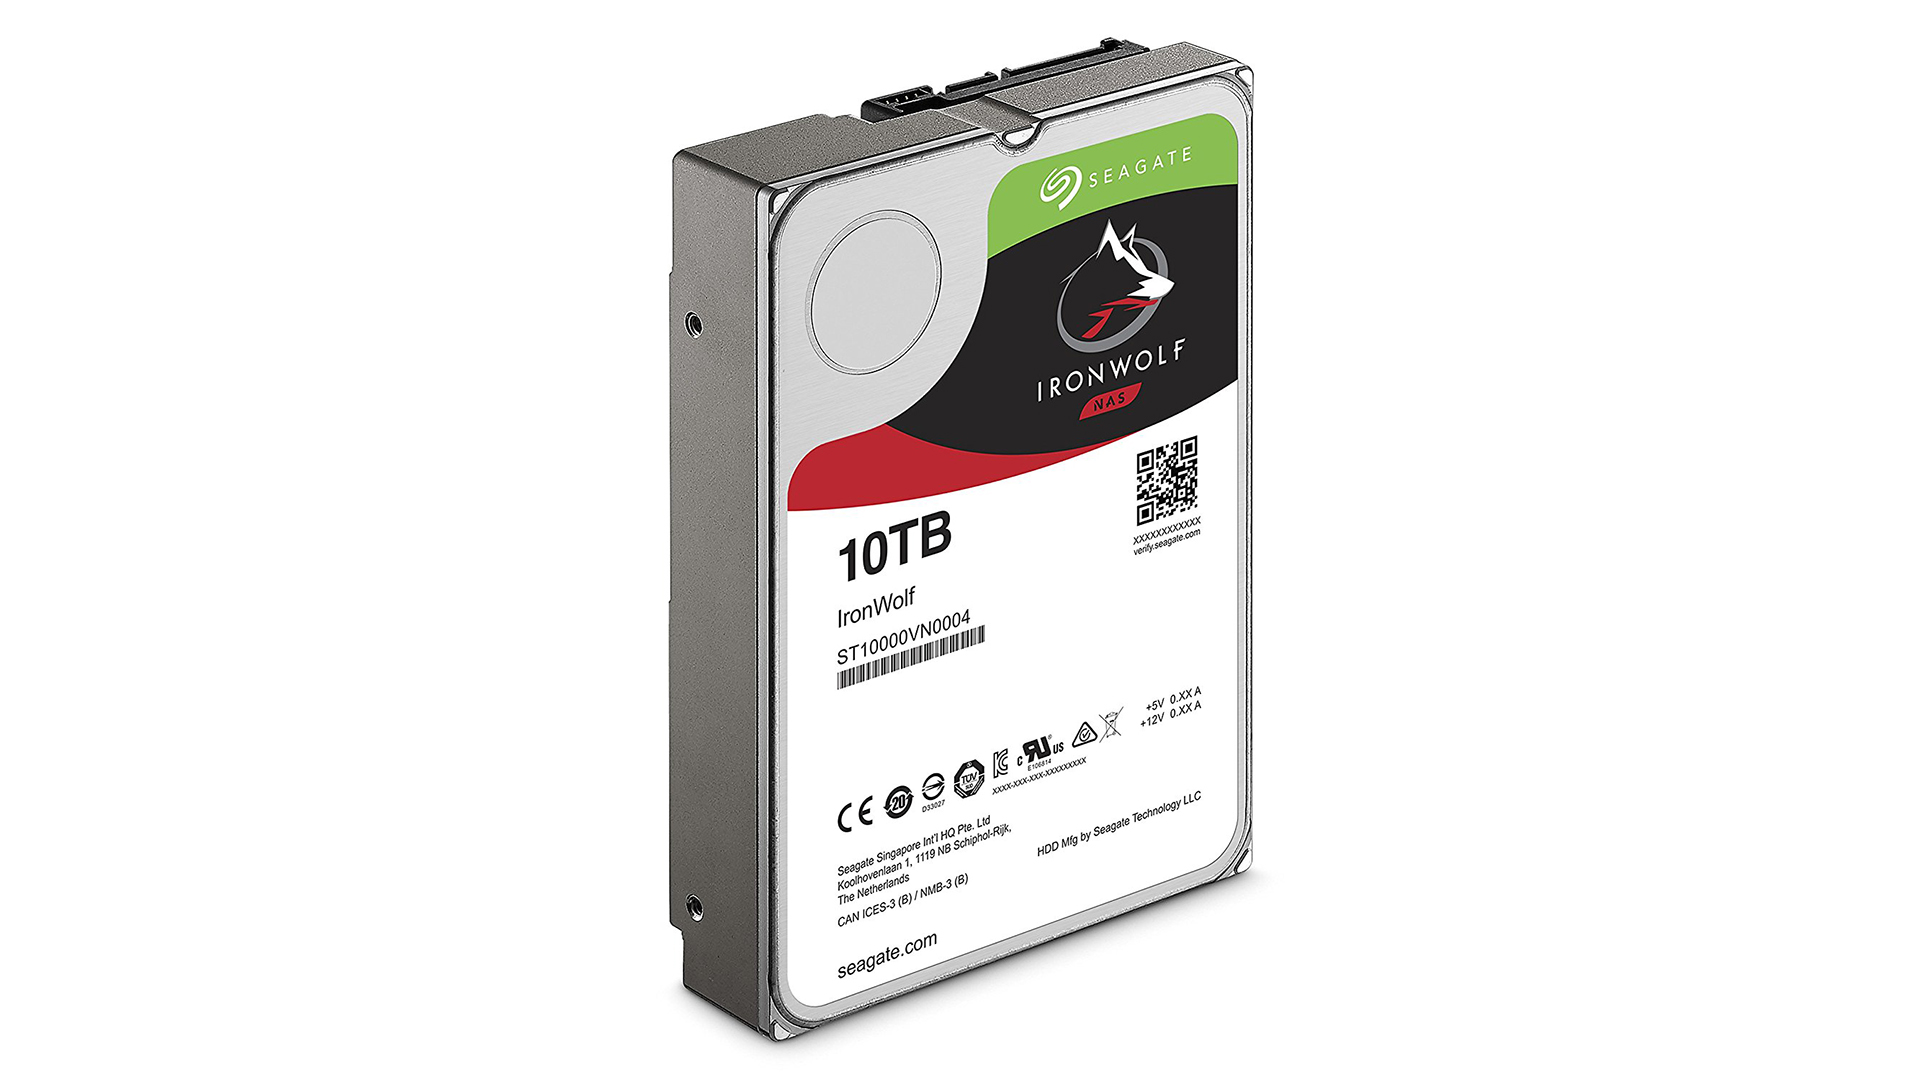 Best NAS hard drive: Seagate IronWolf NAS